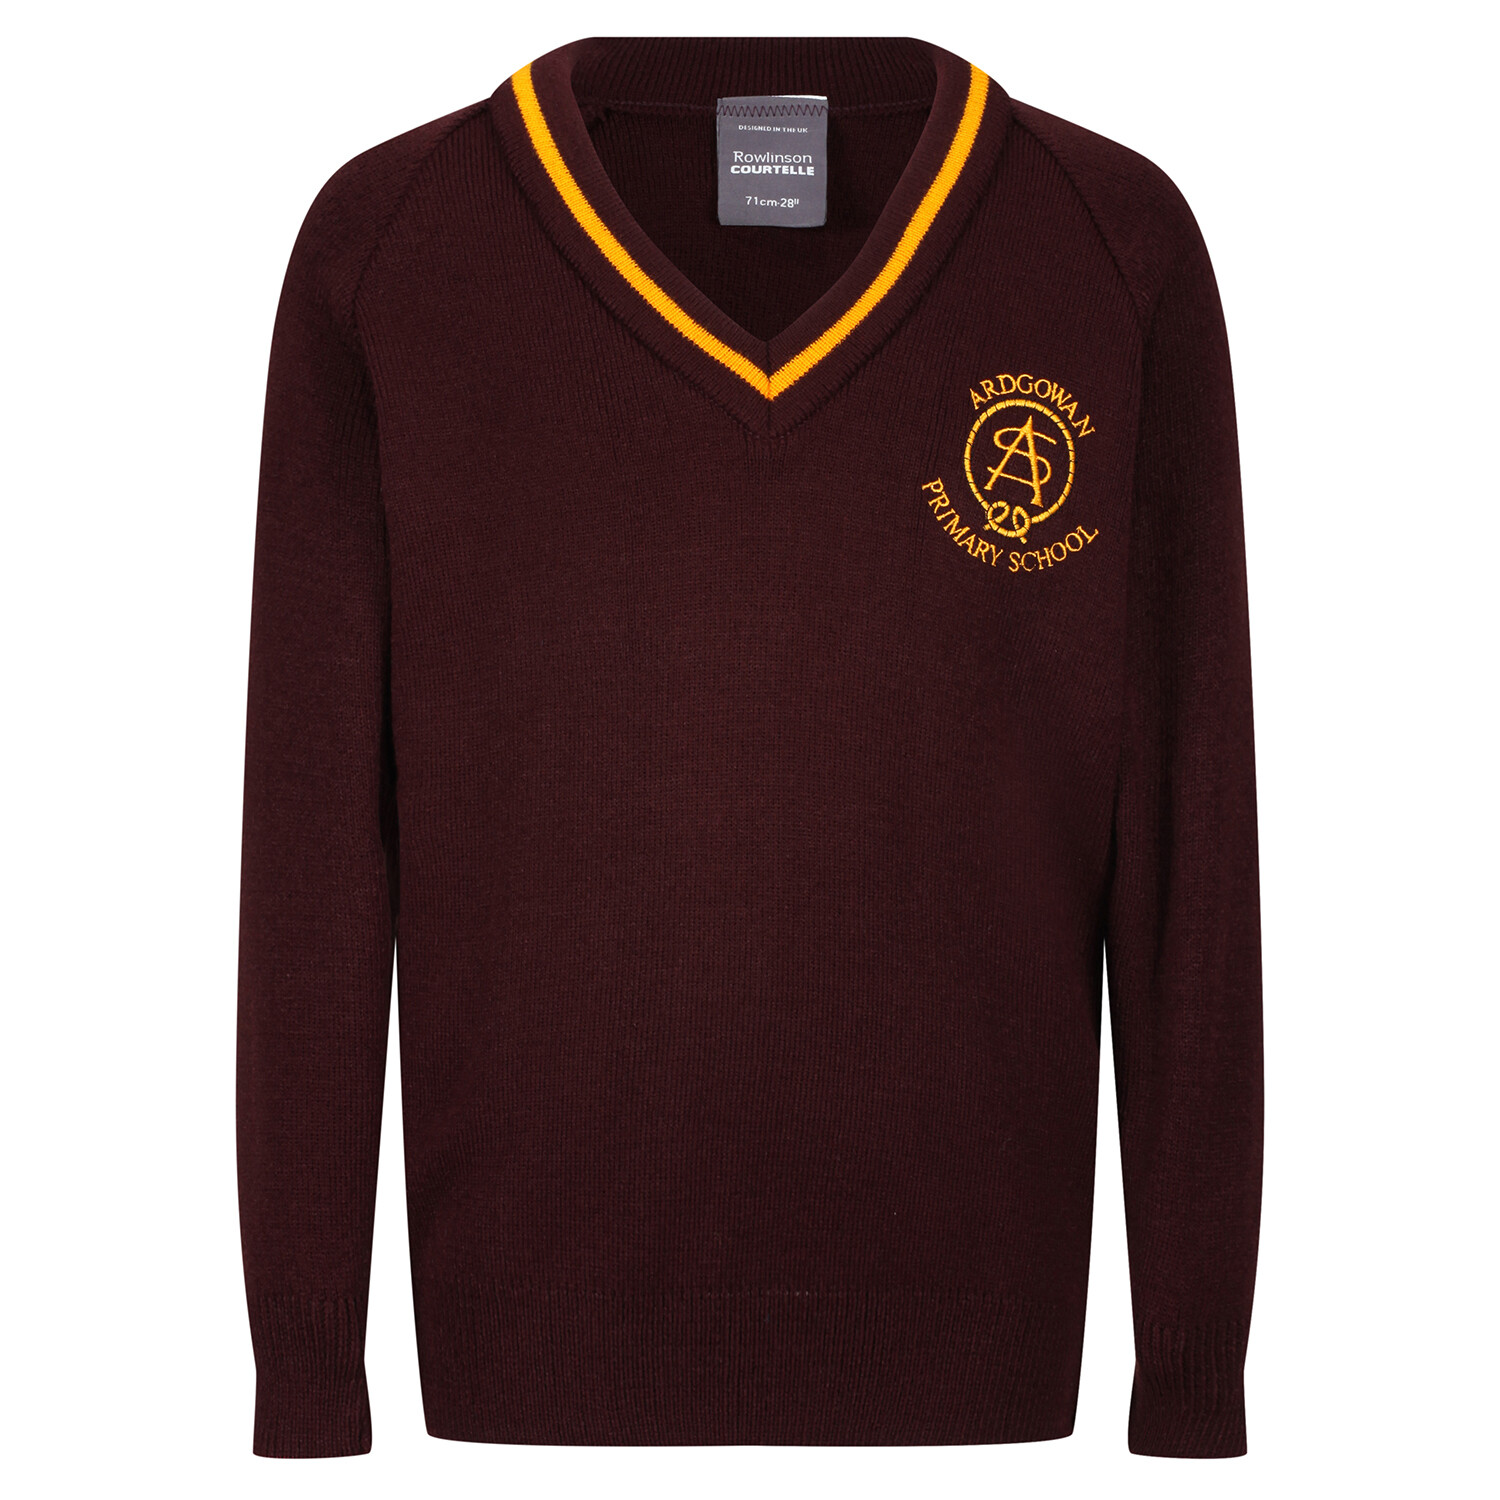 Ardgowan Primary Knitted V-neck with stripe